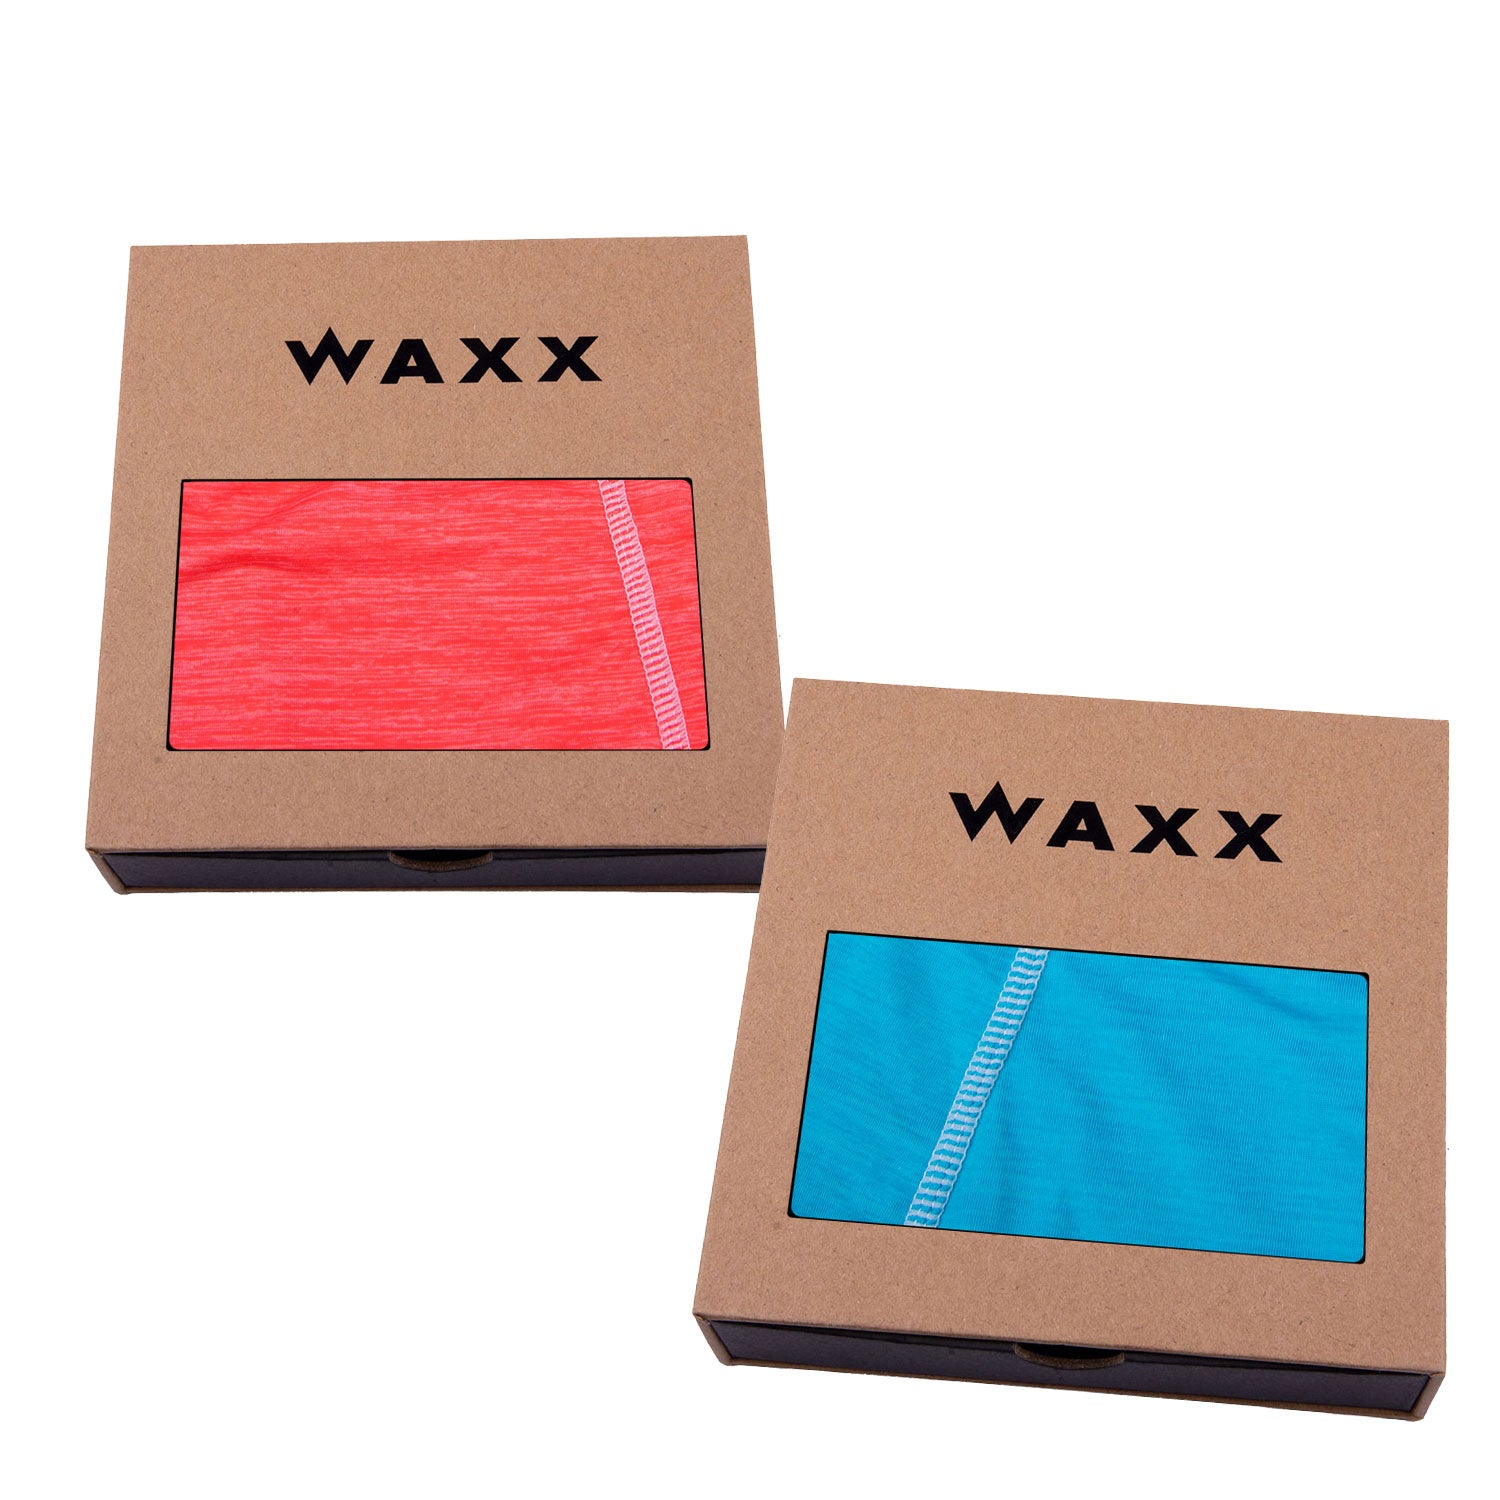 2 Pairs of Waxx Women's Boy Shorts 'The Solids'